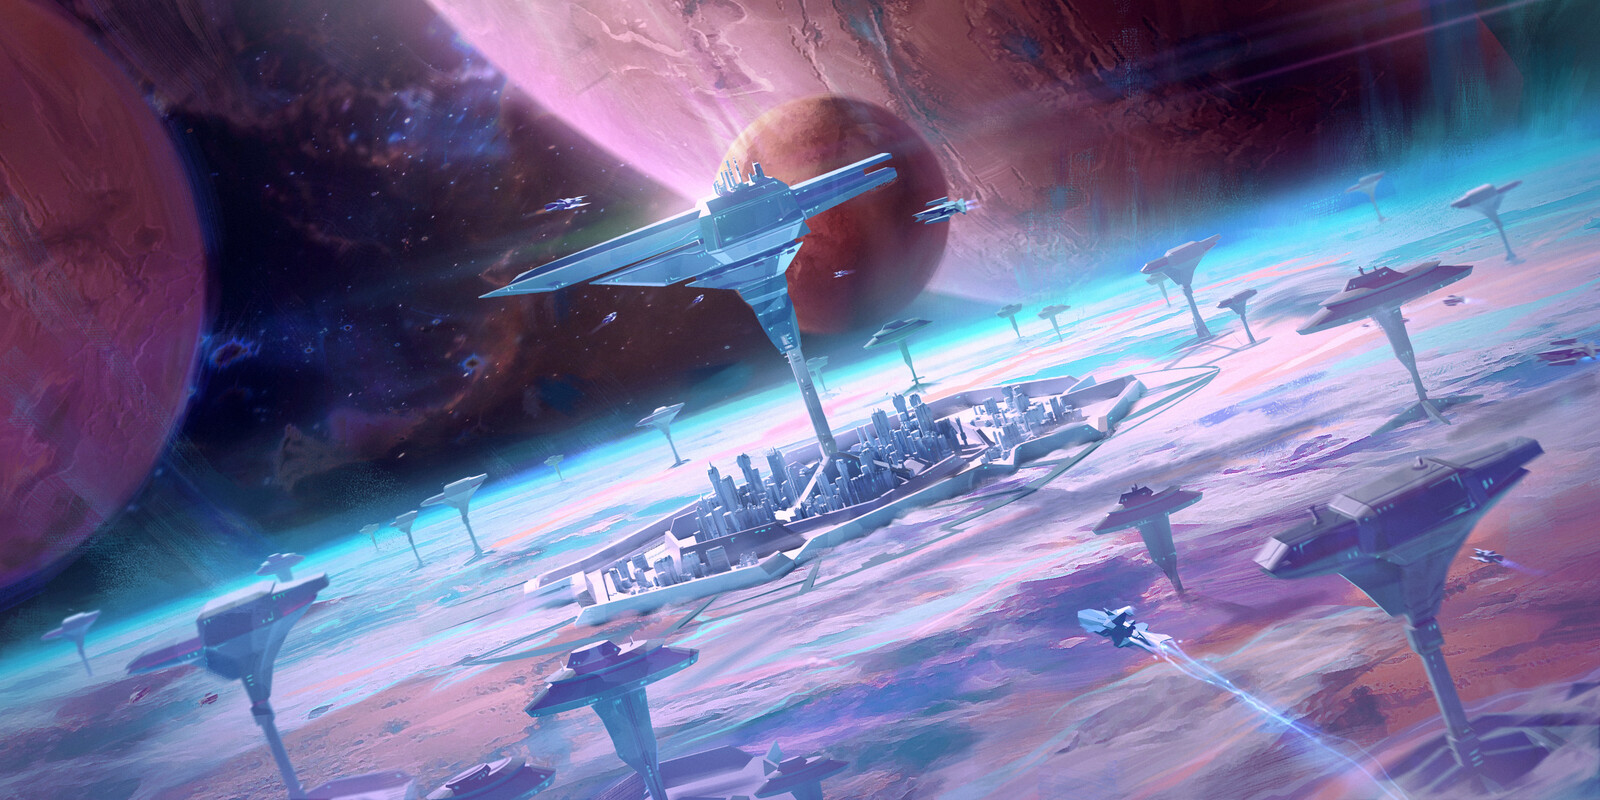 Spaceports On a Planet